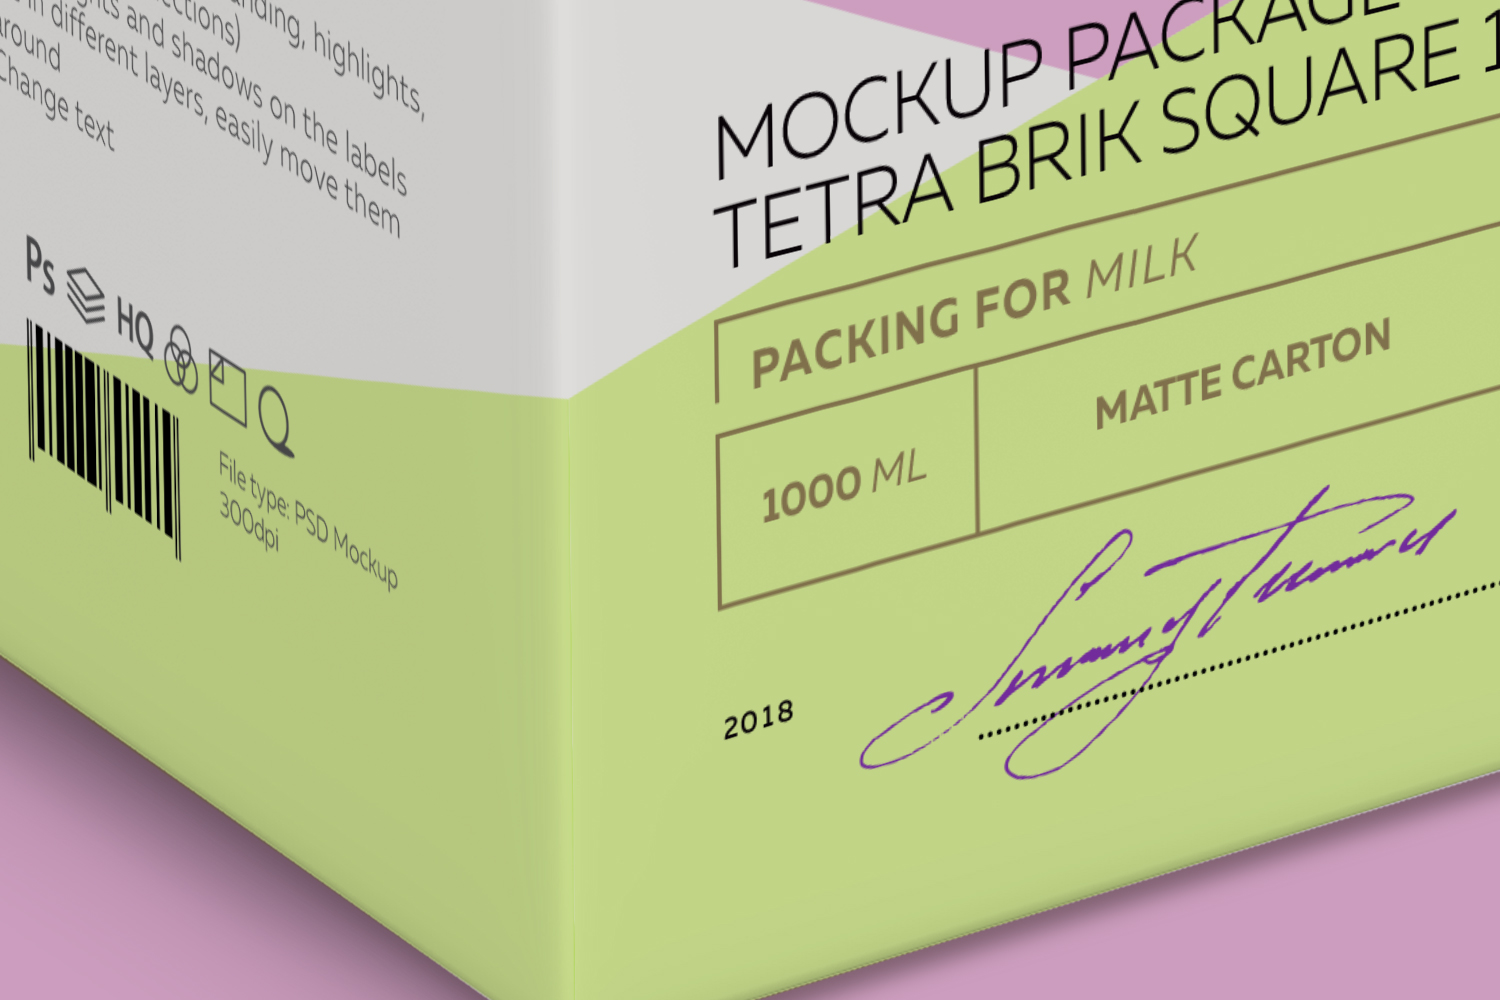 Free-Milk-Box-Packaging-Tetra-Brik-Square-1l-Mockup-PSD-2018-2